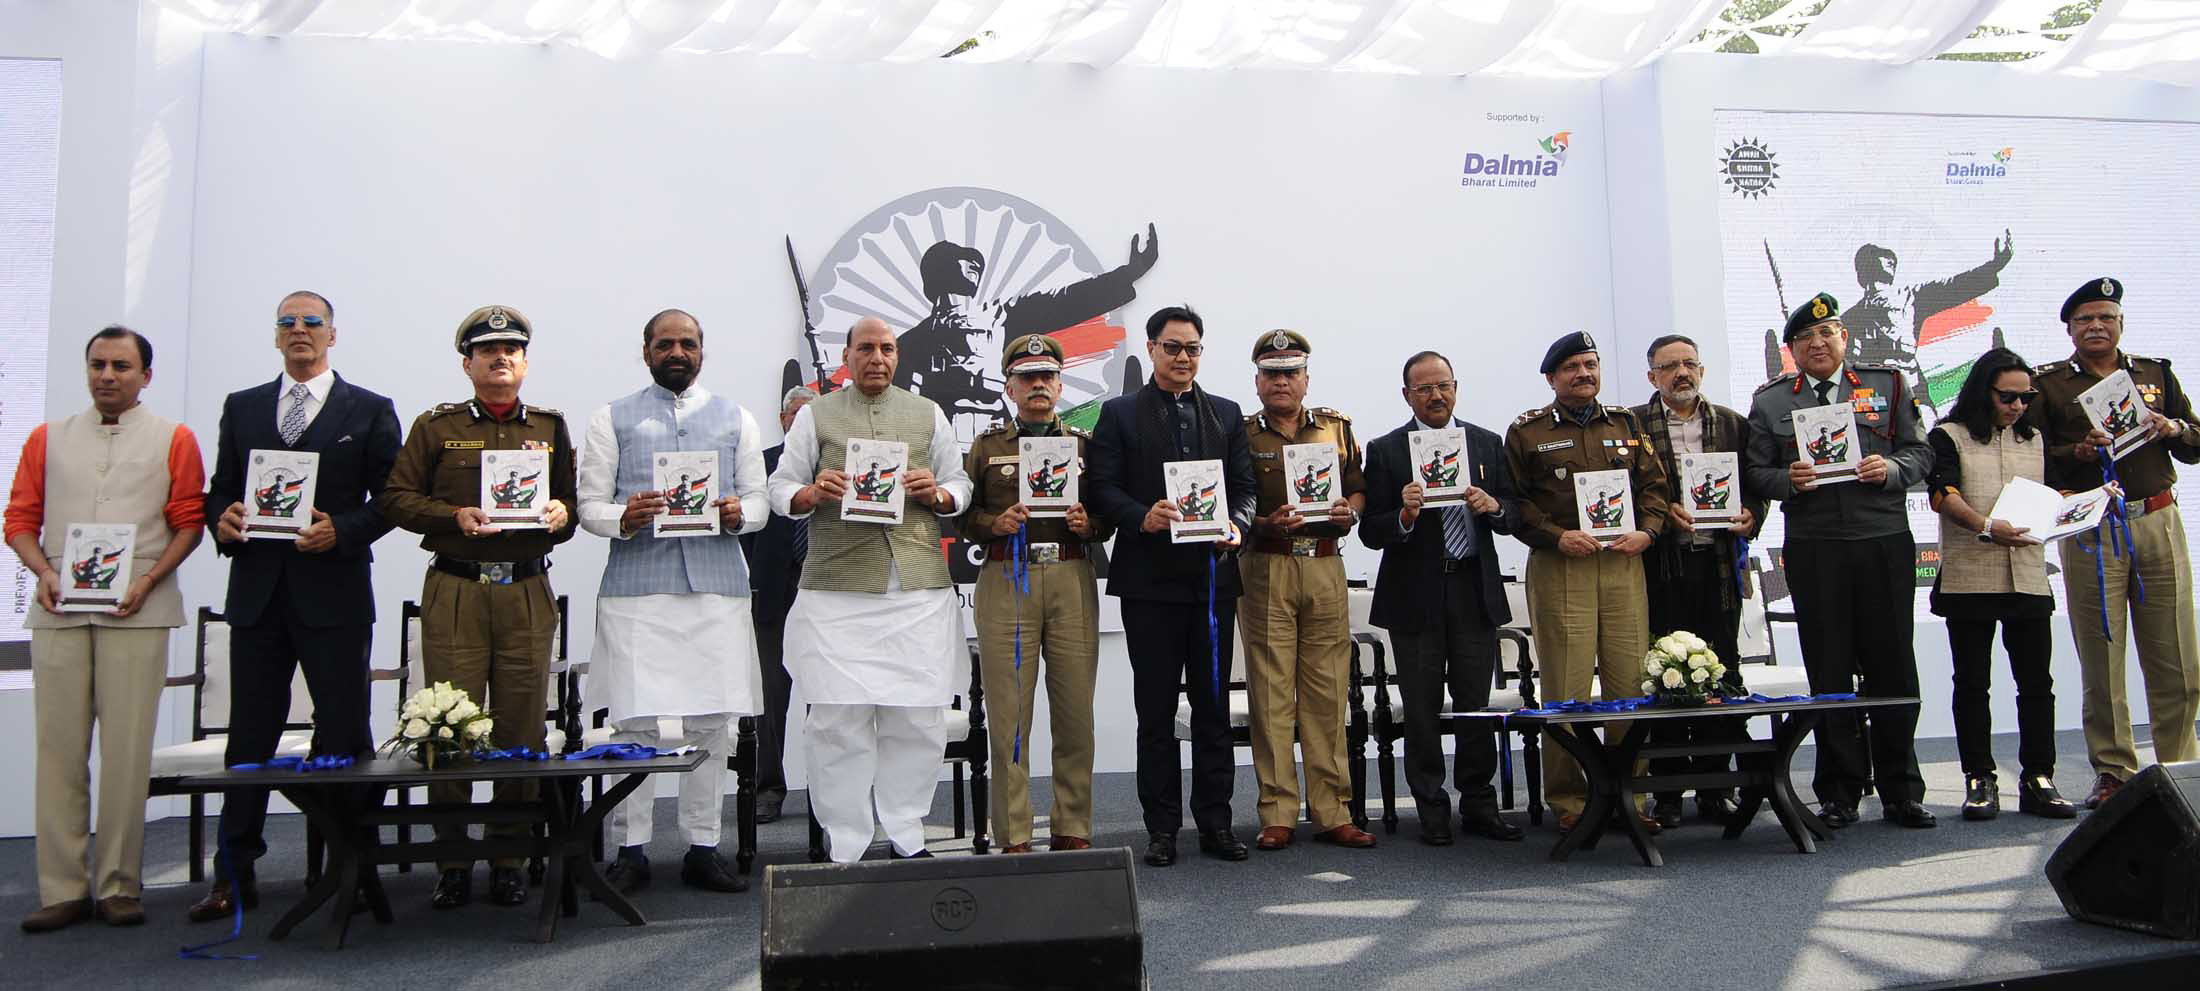 "The Union Home Minister, Shri Rajnath Singh releasing a graphic novel series depicting the martyrs' sacrifices, during a function to raise funds for the ""Bharat ke Veer"" fund, in New Delhi on January 20, 2018. The Ministers of State for Home Affairs, Shri Hansraj Gangaram Ahir and Shri Kiren Rijiju, the National Security Advisor, Shri Ajit Doval, the Home Secretary, Shri Rajiv Gauba and other dignitaries are also seen."